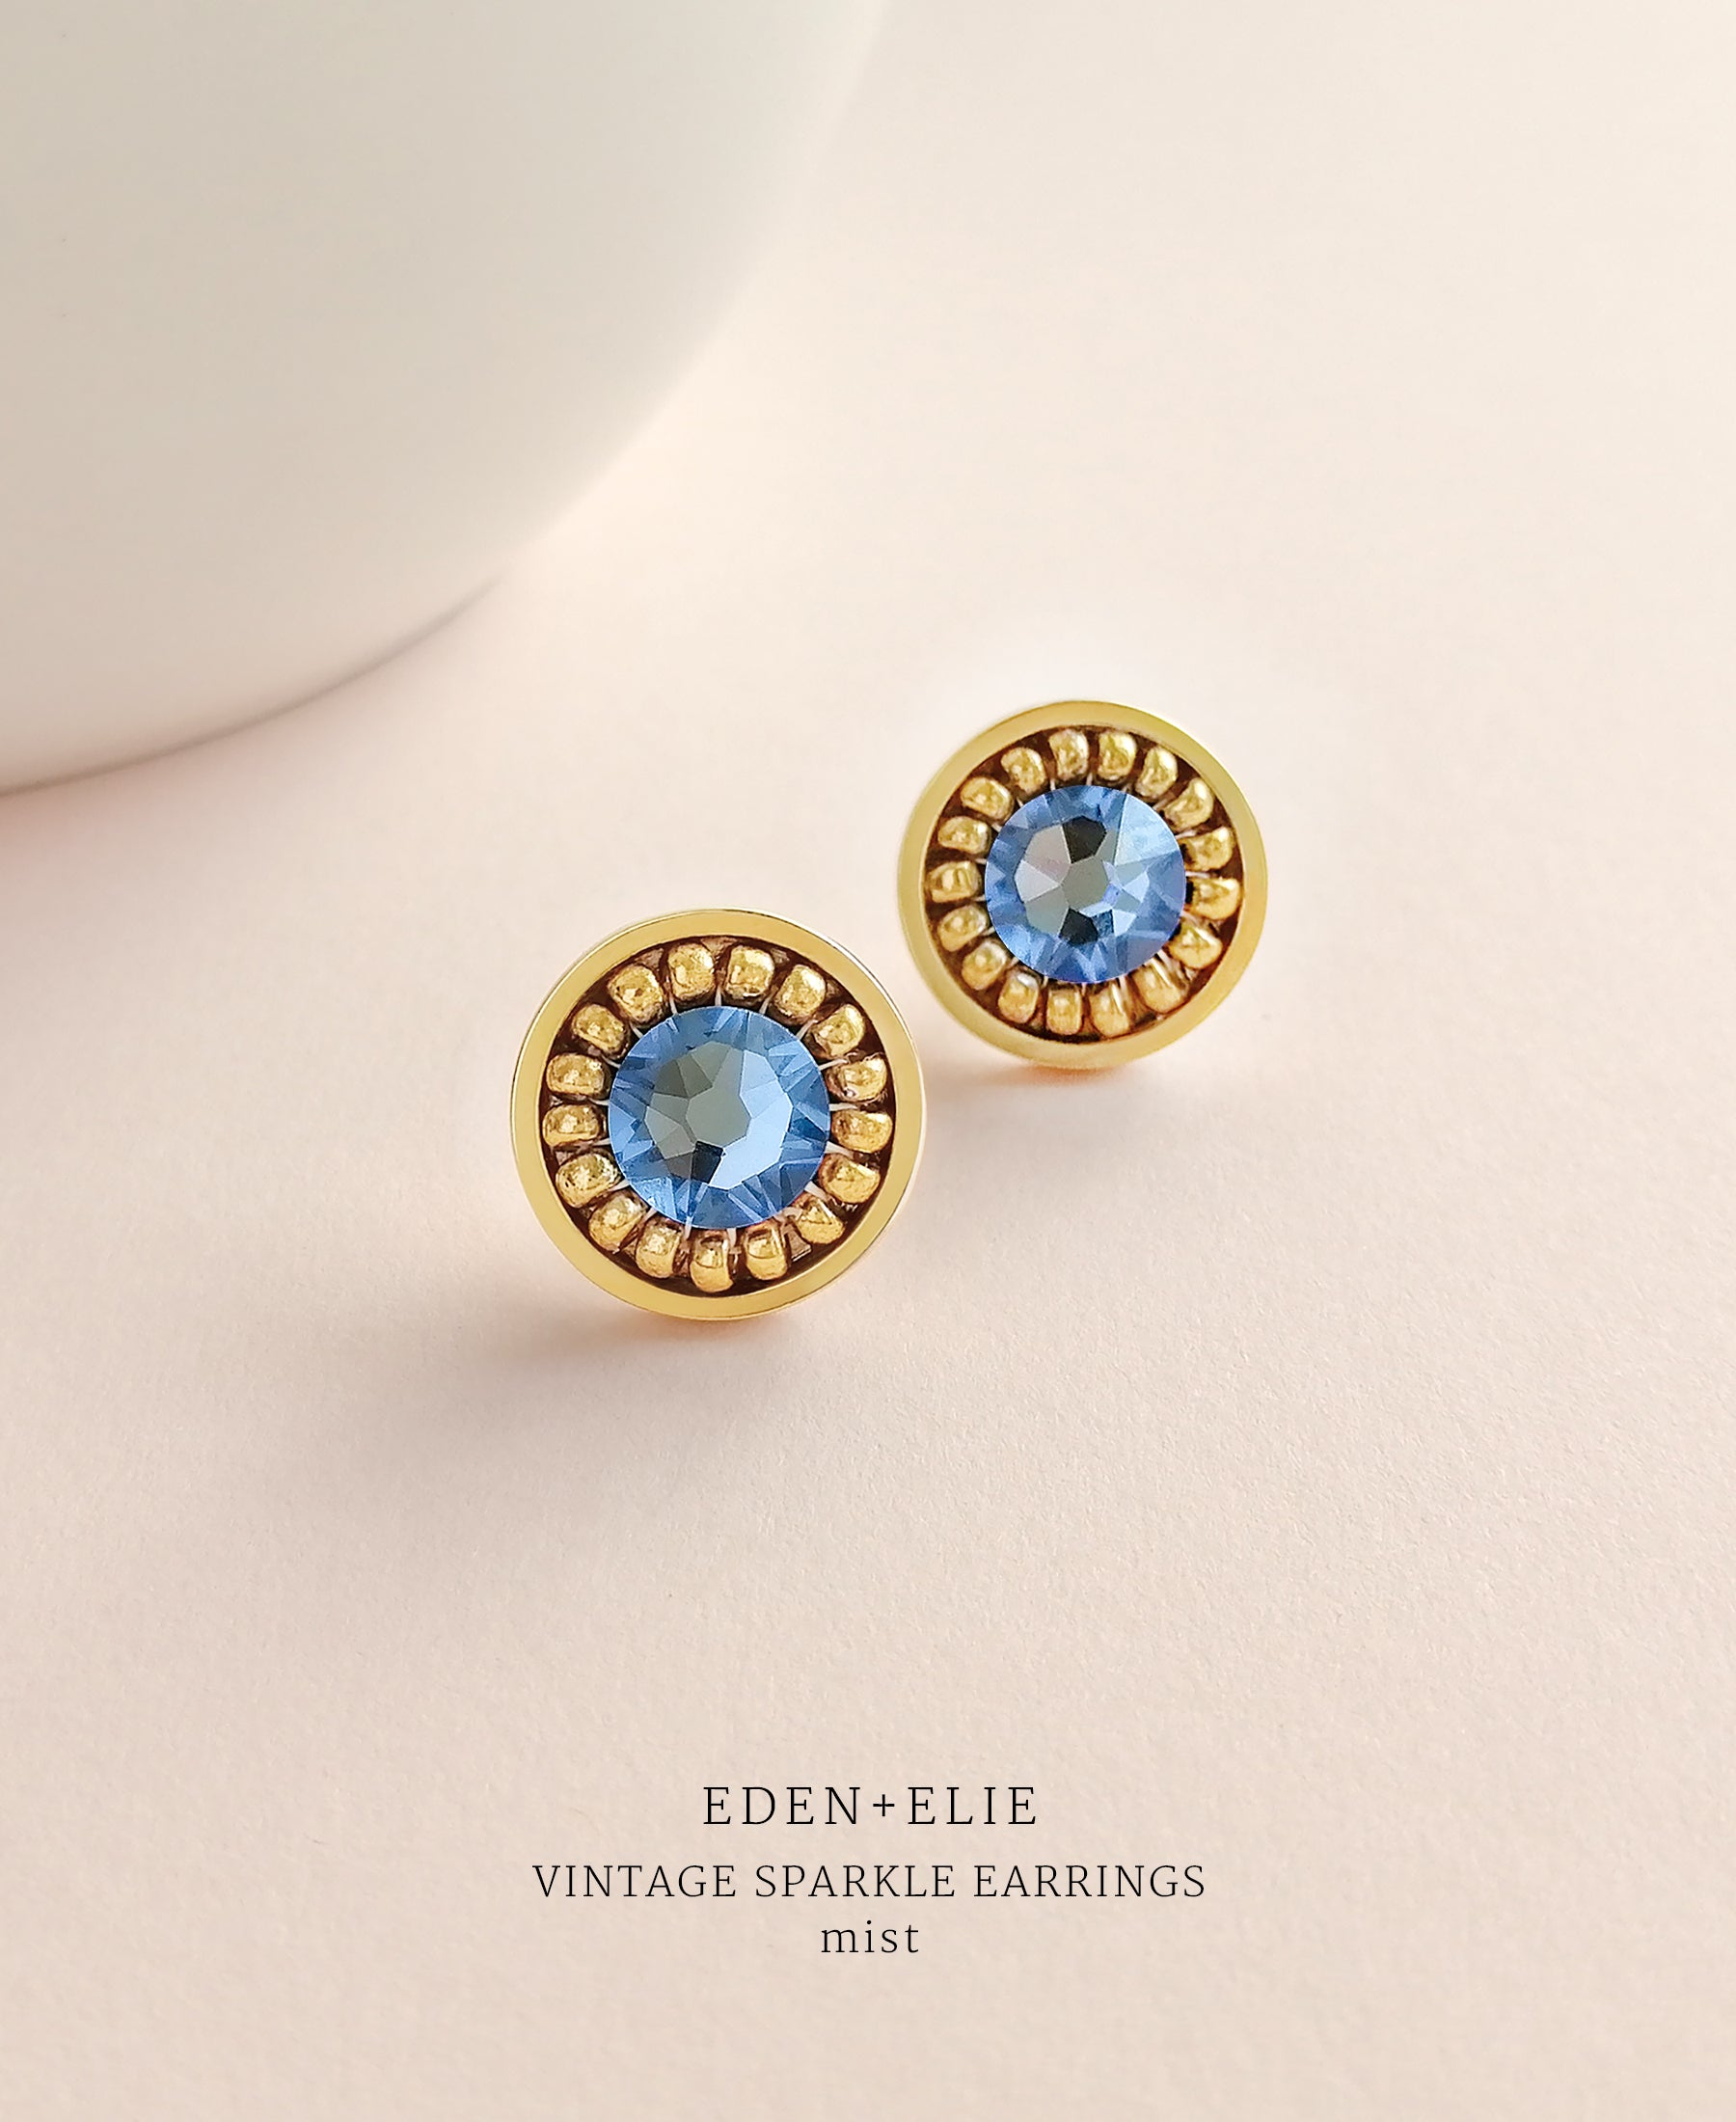 EDEN + ELIE gold plated jewelry Vintage Sparkle stud earrings - mist blue